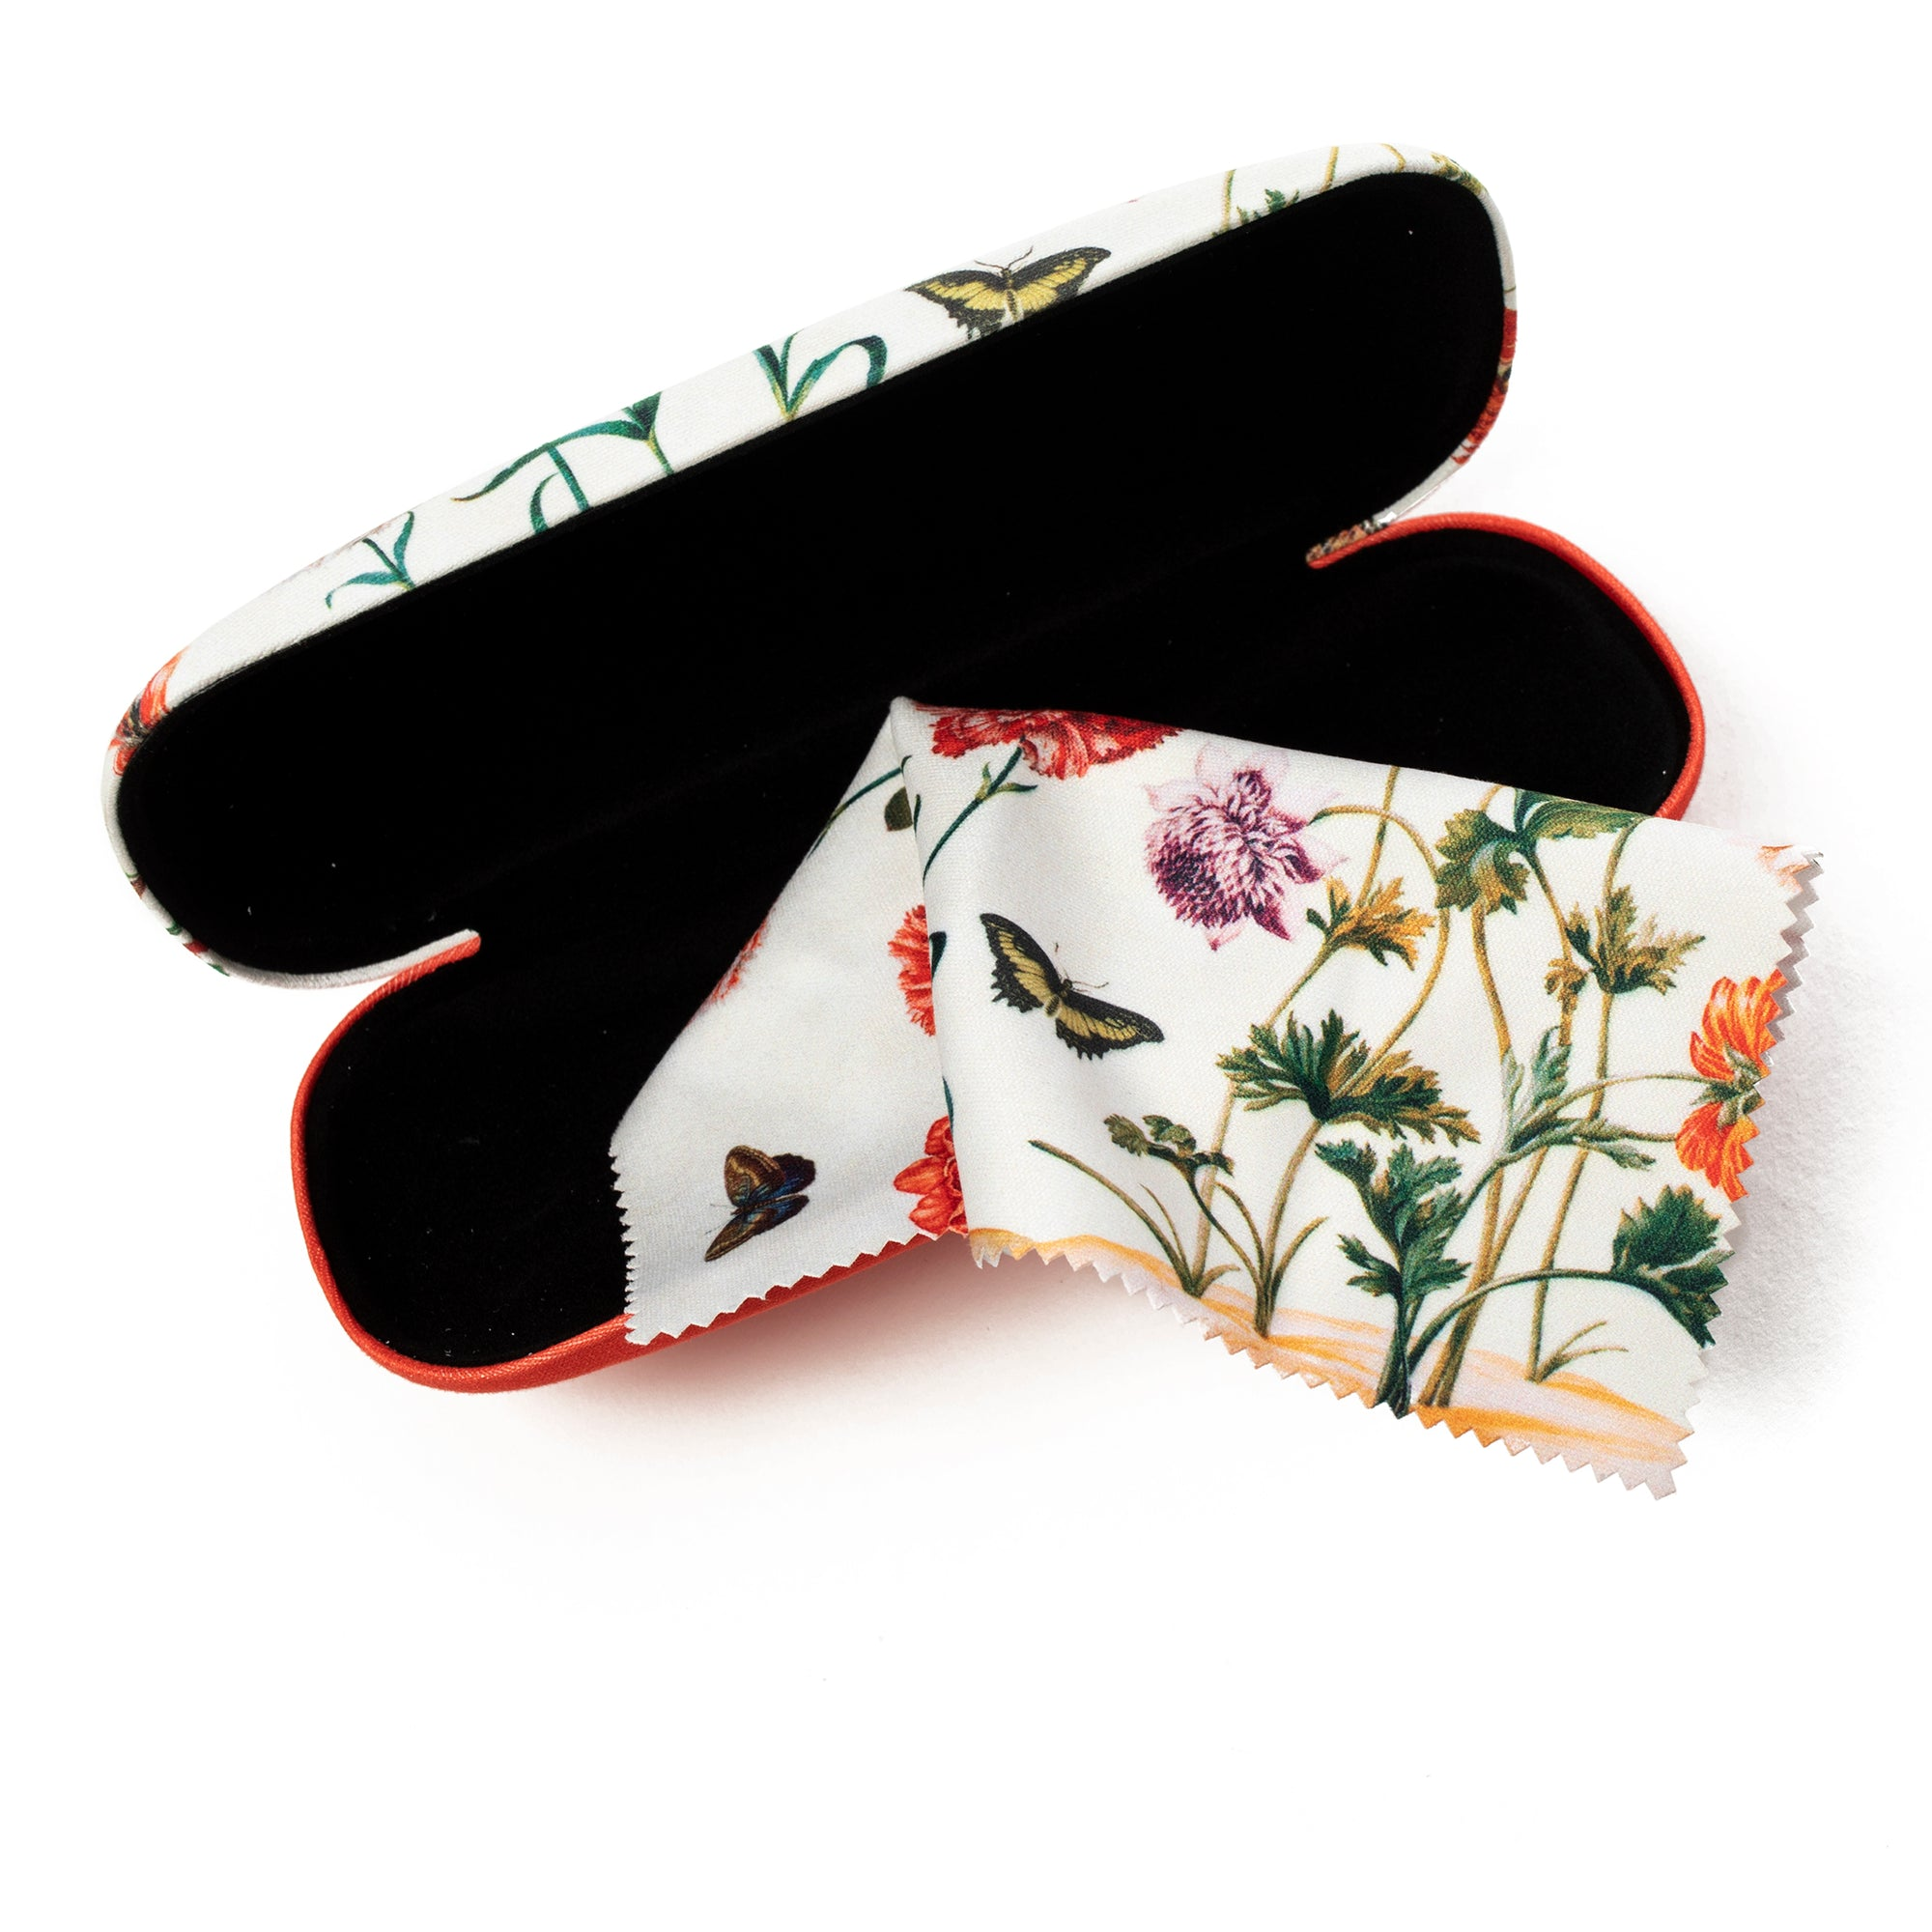 Eyeglass Case and Lens Cloth- Marie Sibylla Merian | Getty Store